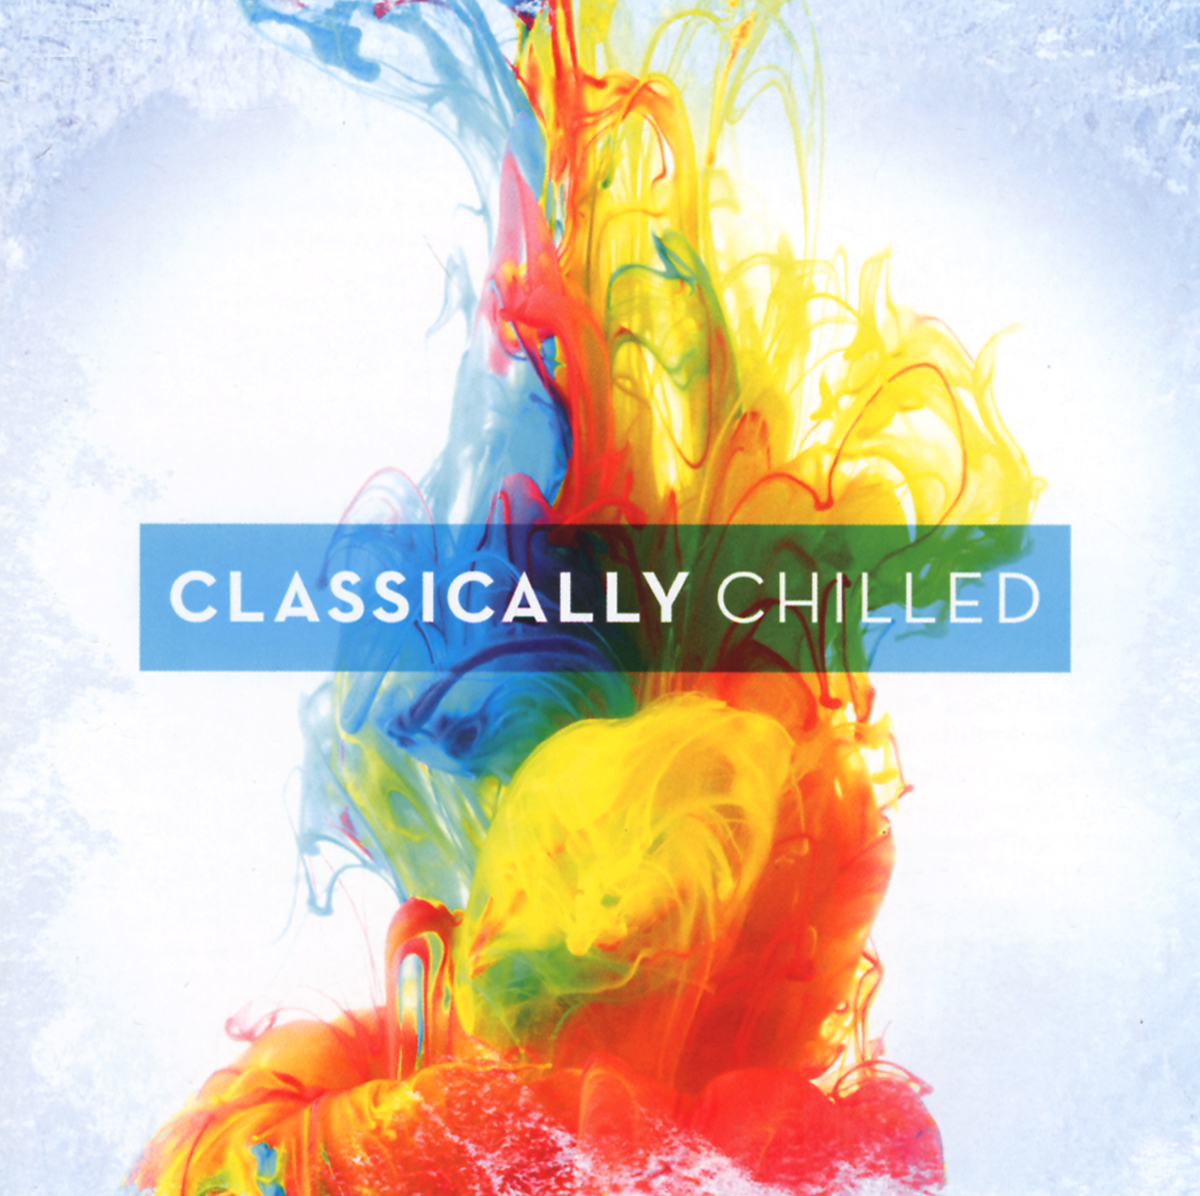 Classically Chilled (2 CD) леонид агутин леонид агутин история любви